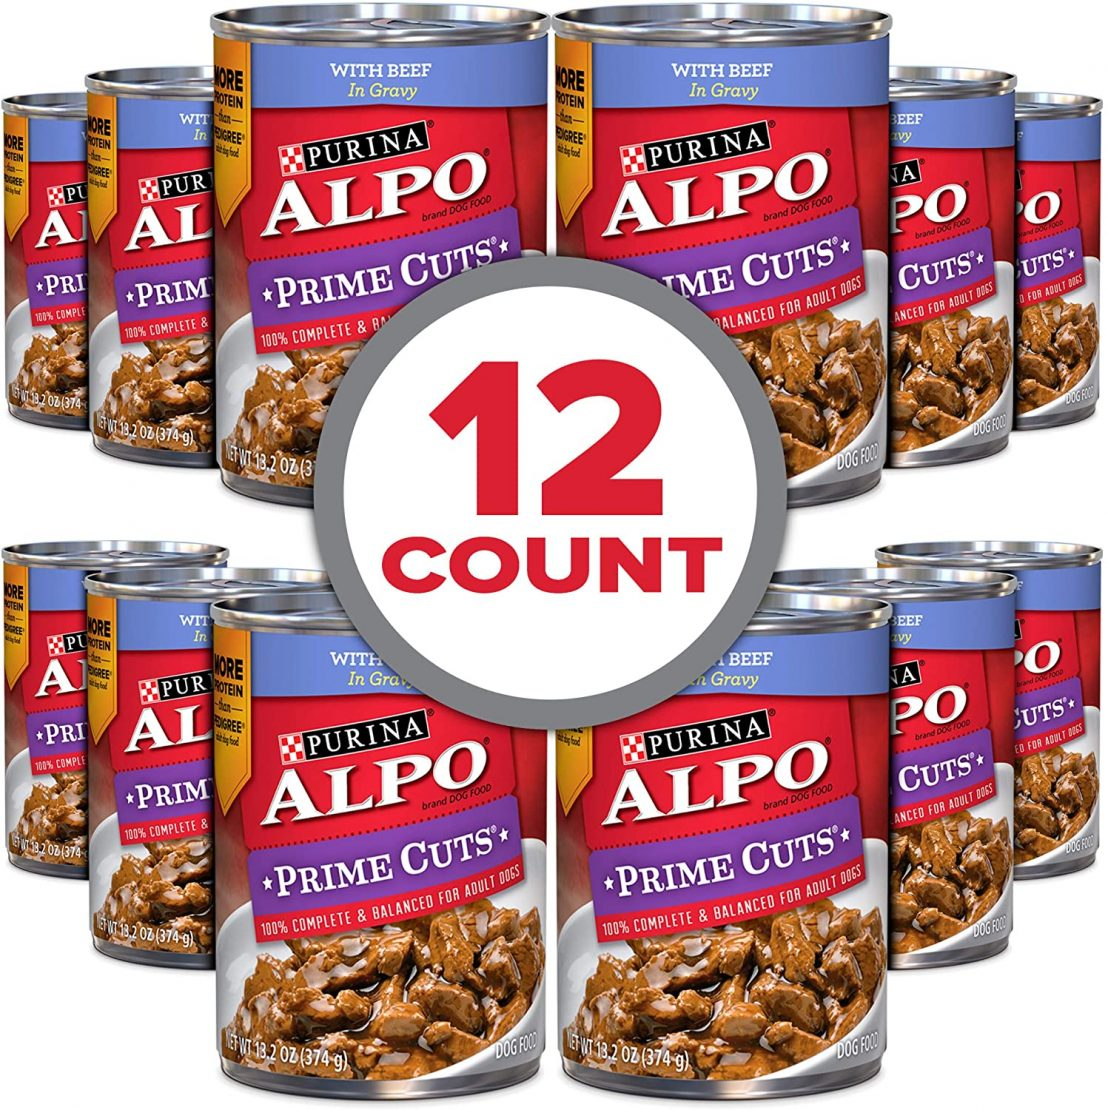 ALPO PRIME CUTS WITH BEEF IN GRAVY CANNED DOG FOOD, 13.2-OZ